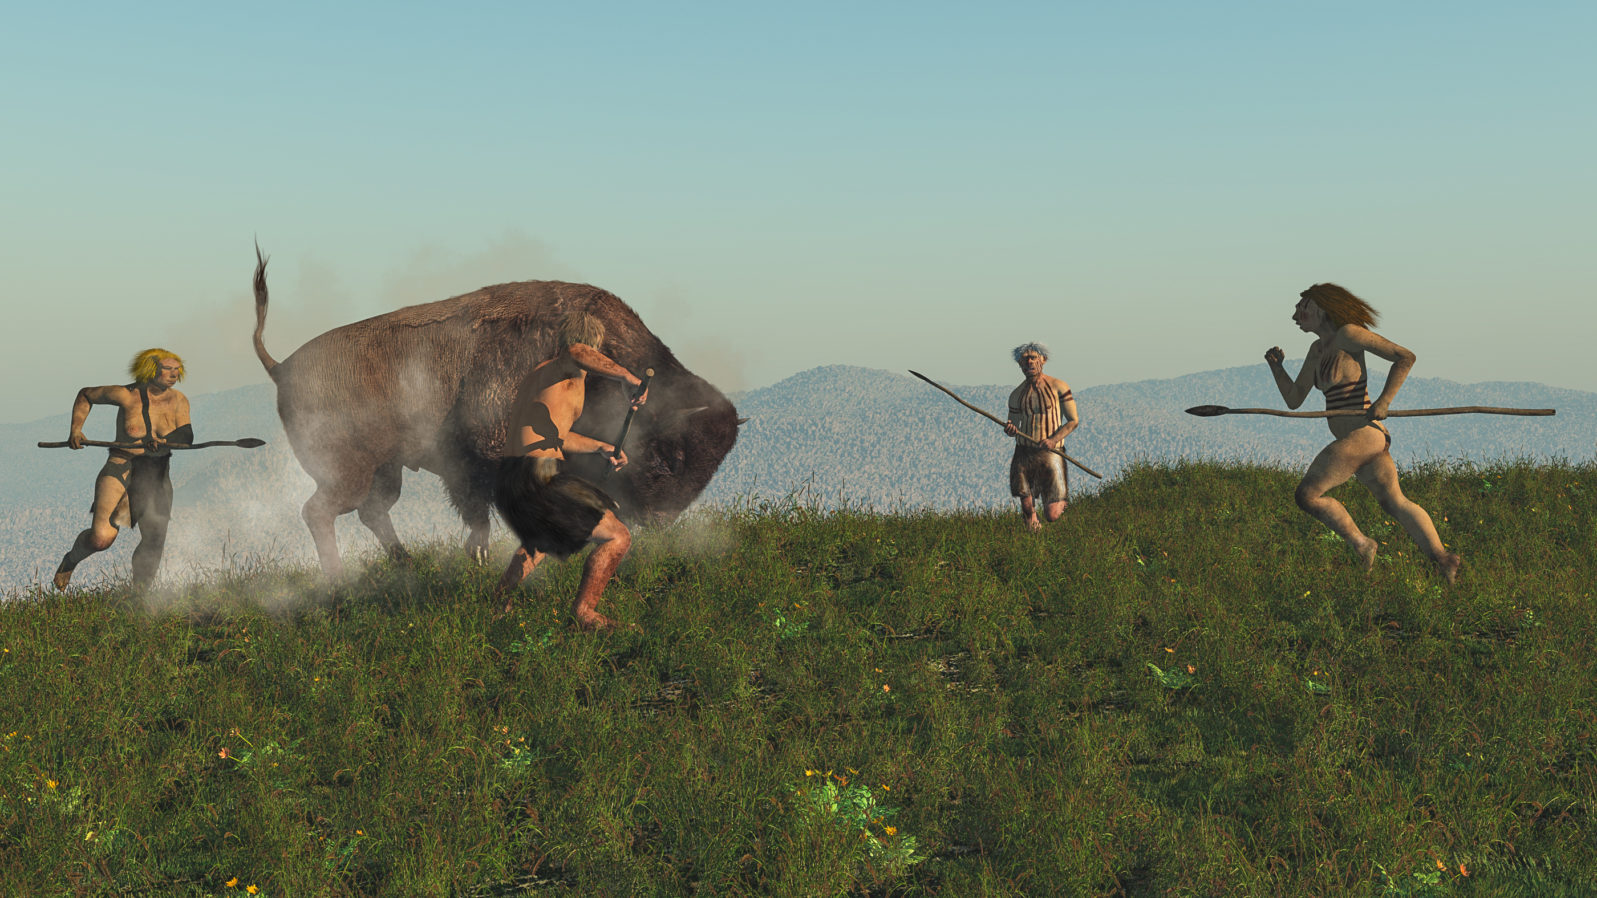 Group of neanderthal hunting a bison